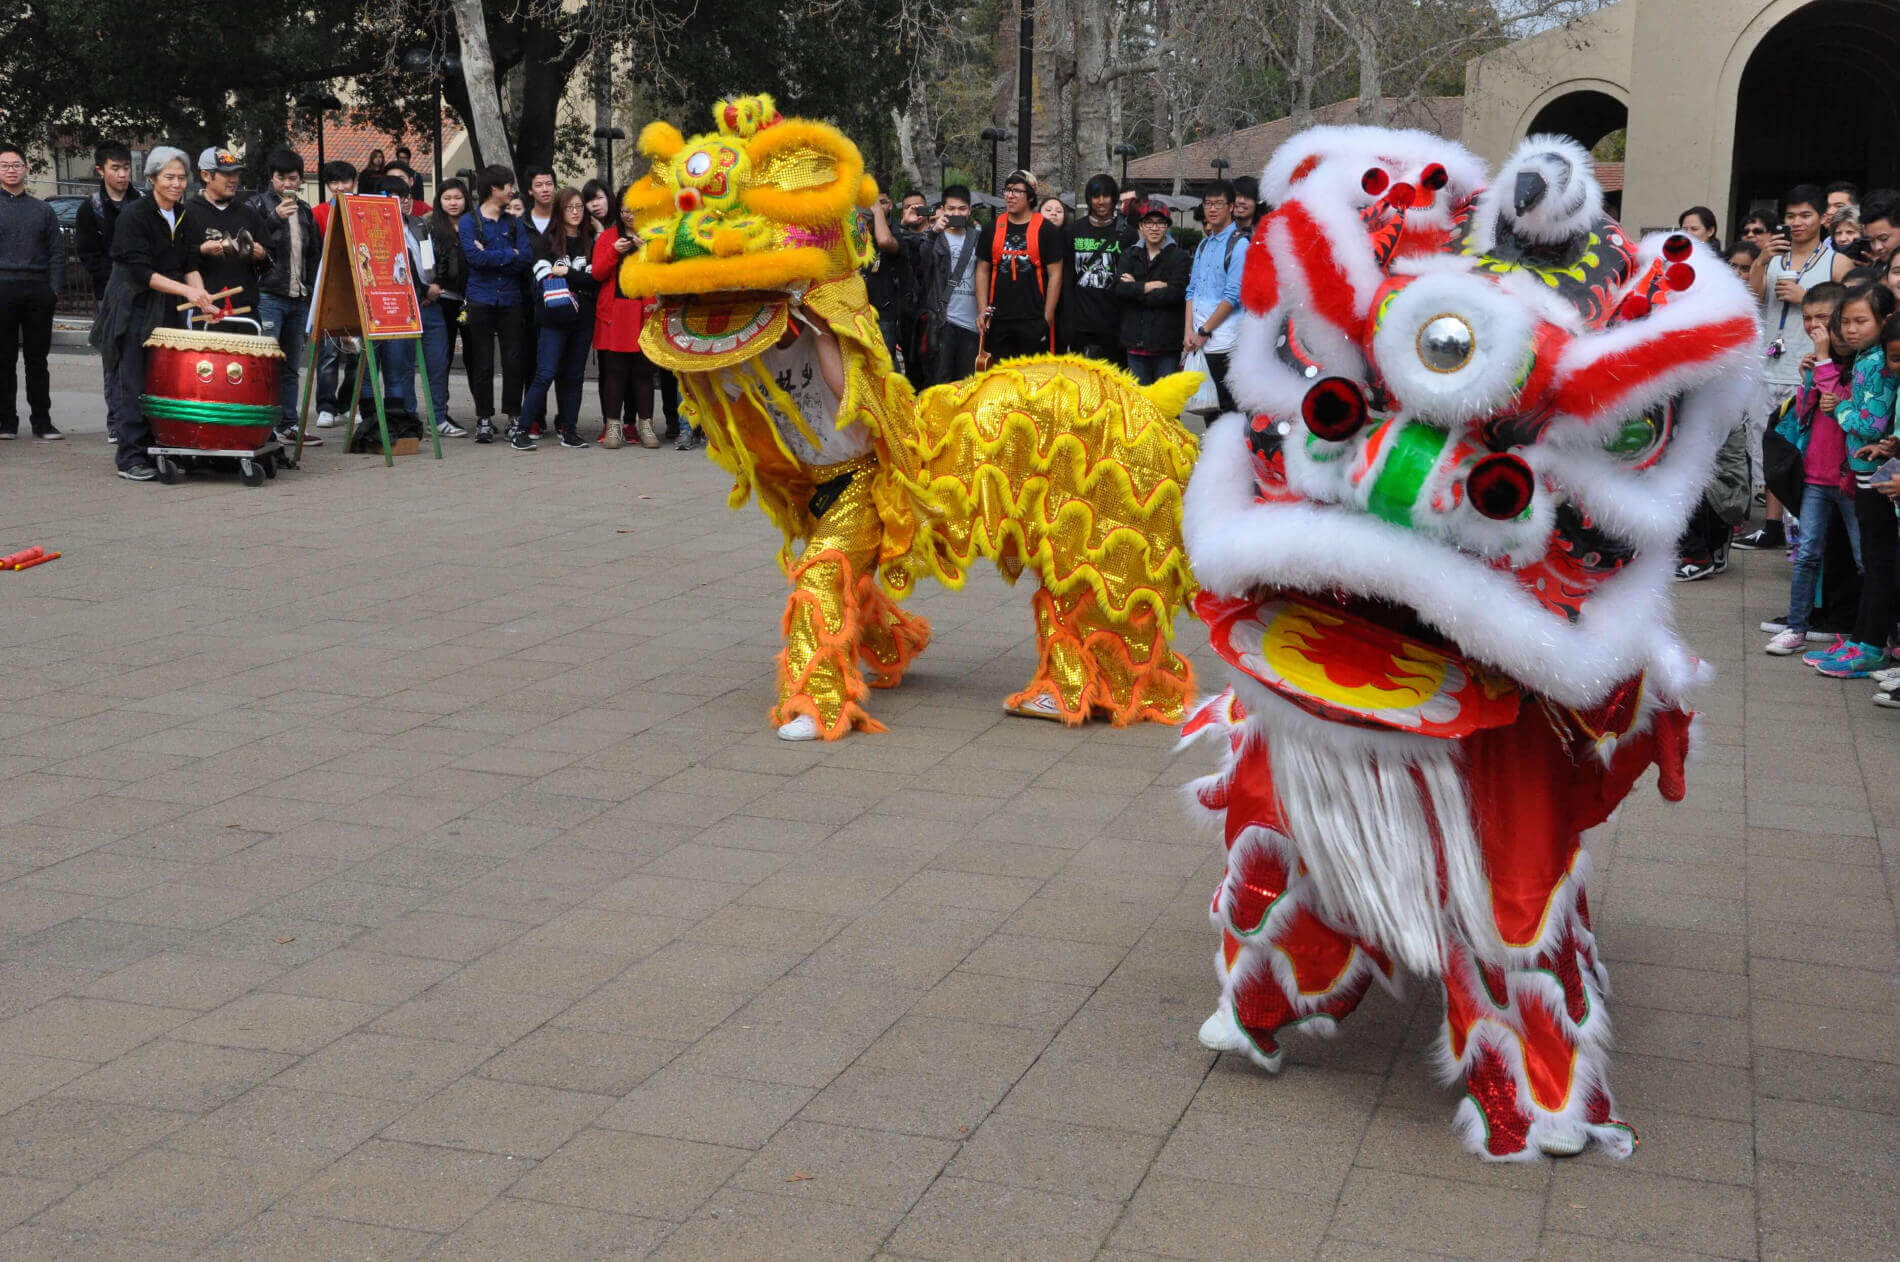 Dragons at a chineese new years celebration